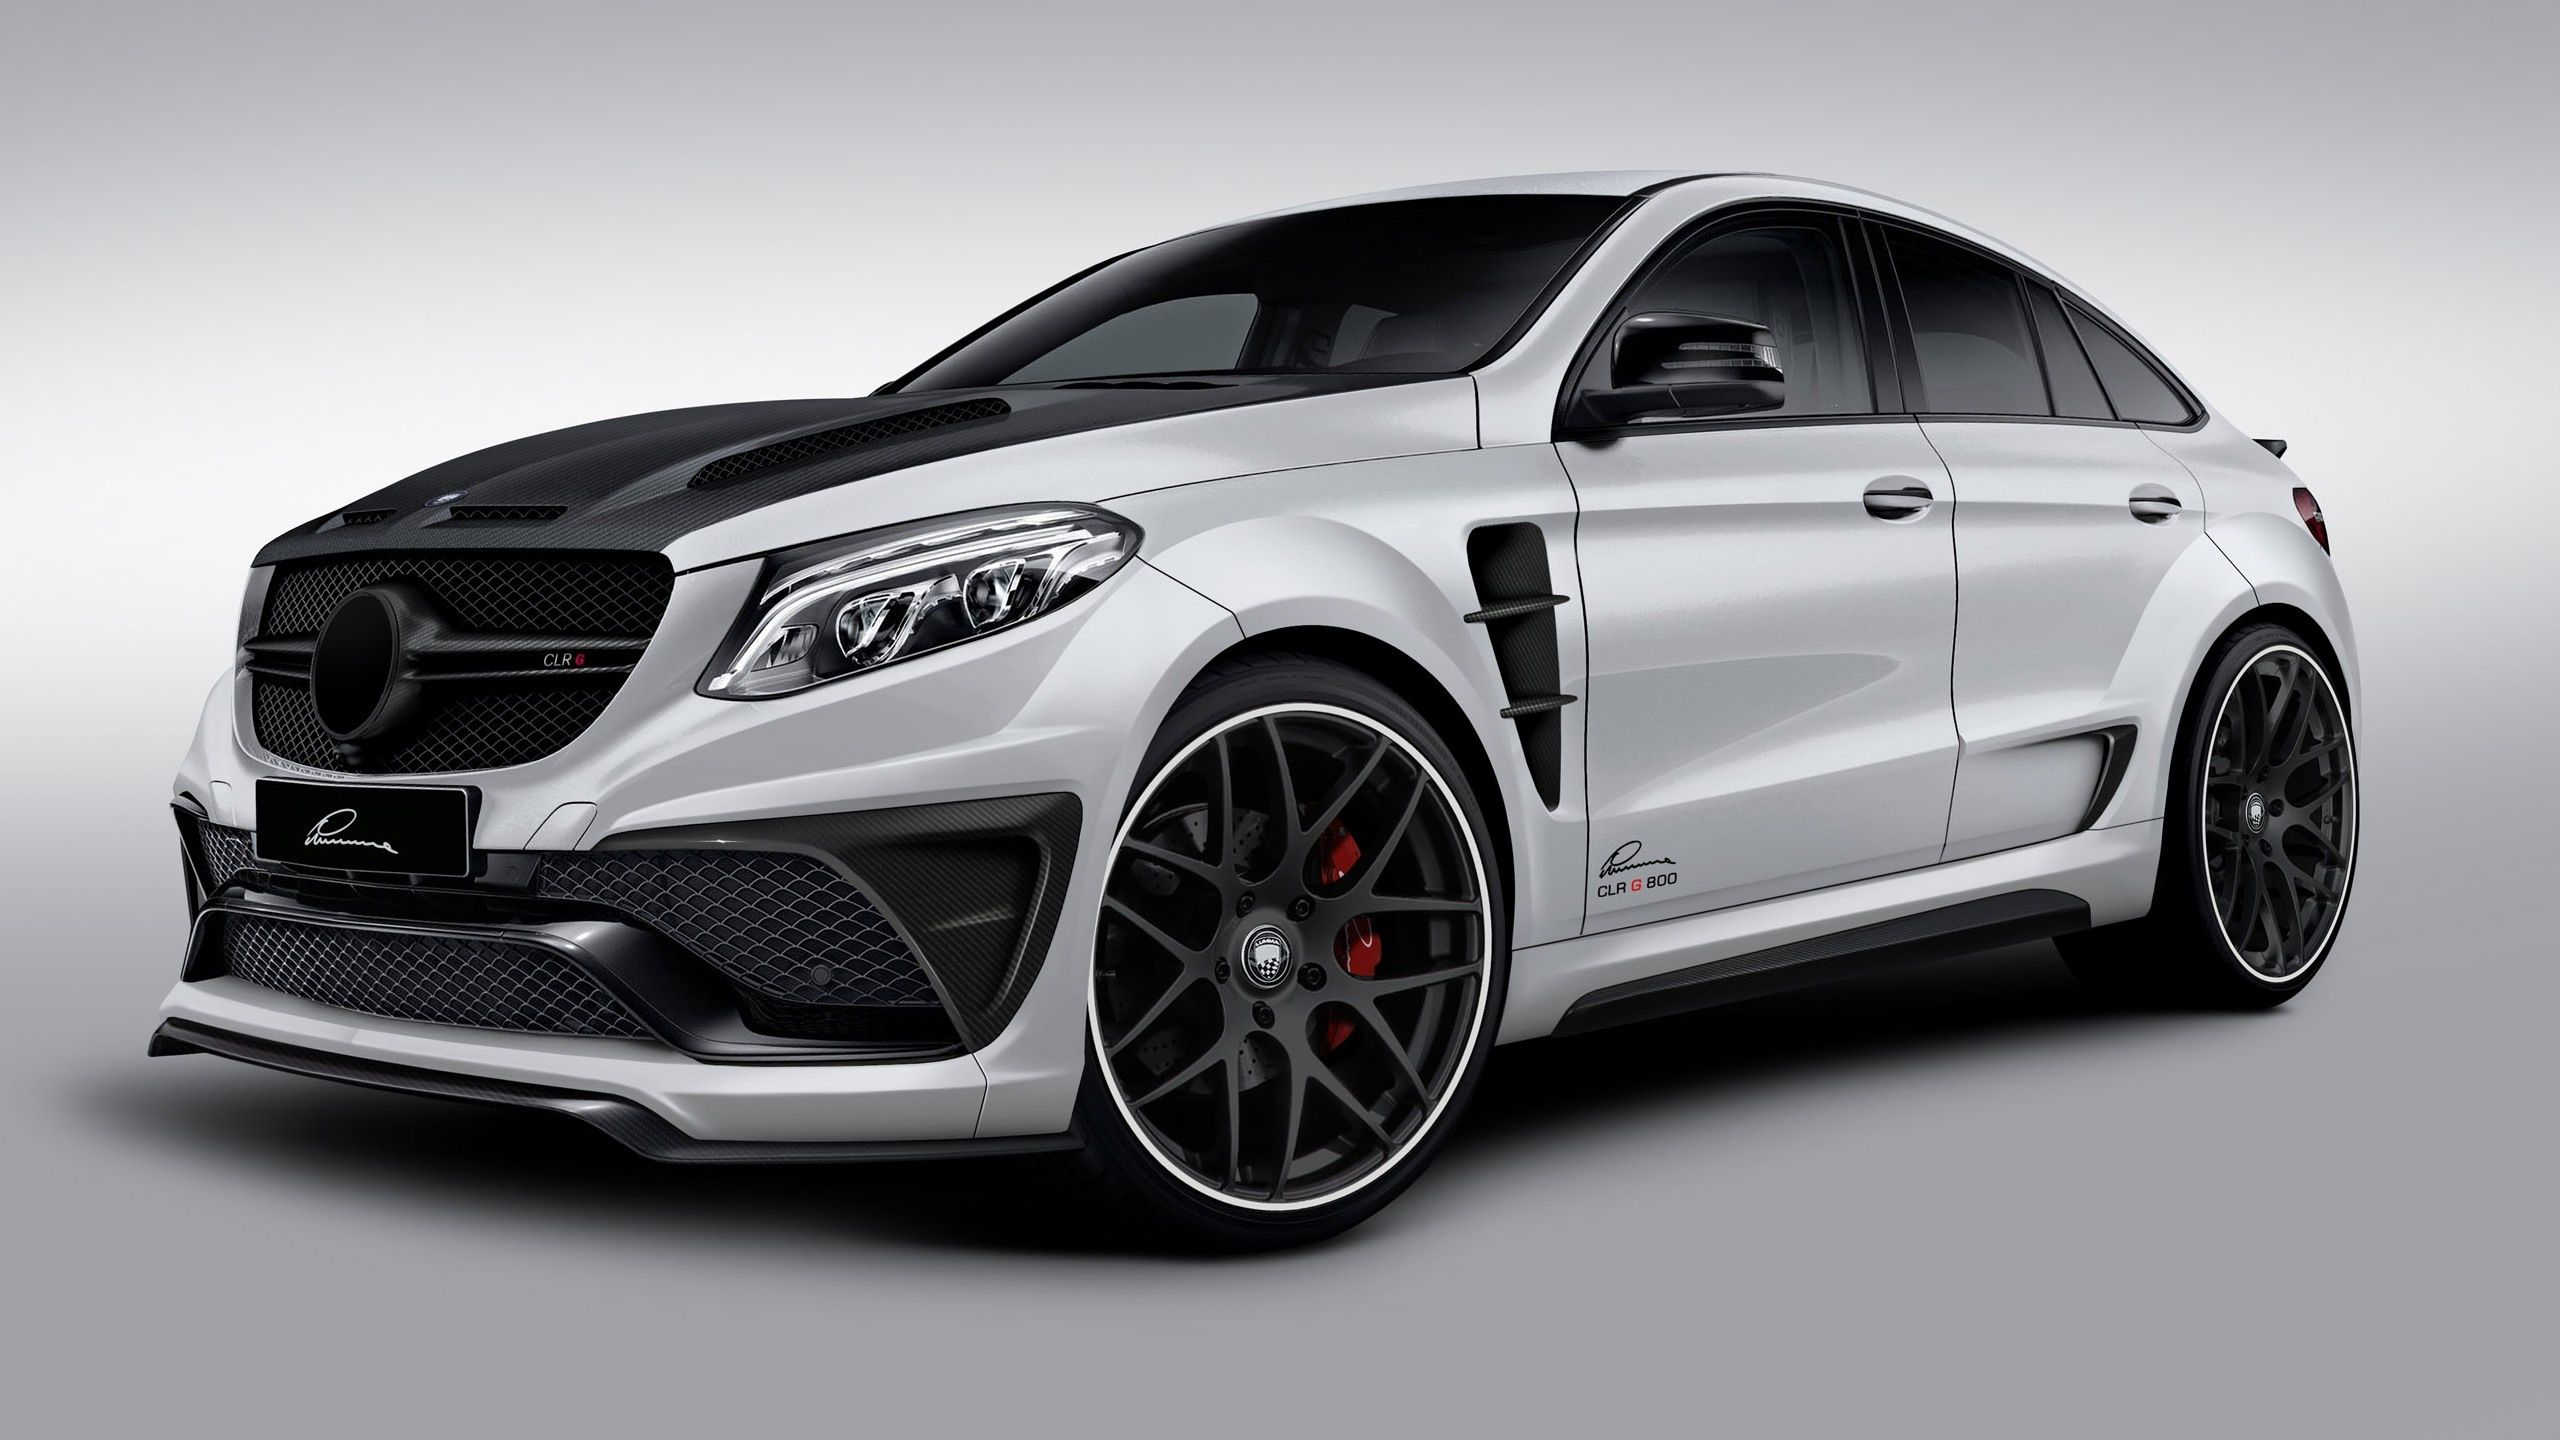 Mercedes Benz Gle Coupe Hd Wallpapers 7wallpapers Net From Webfoto